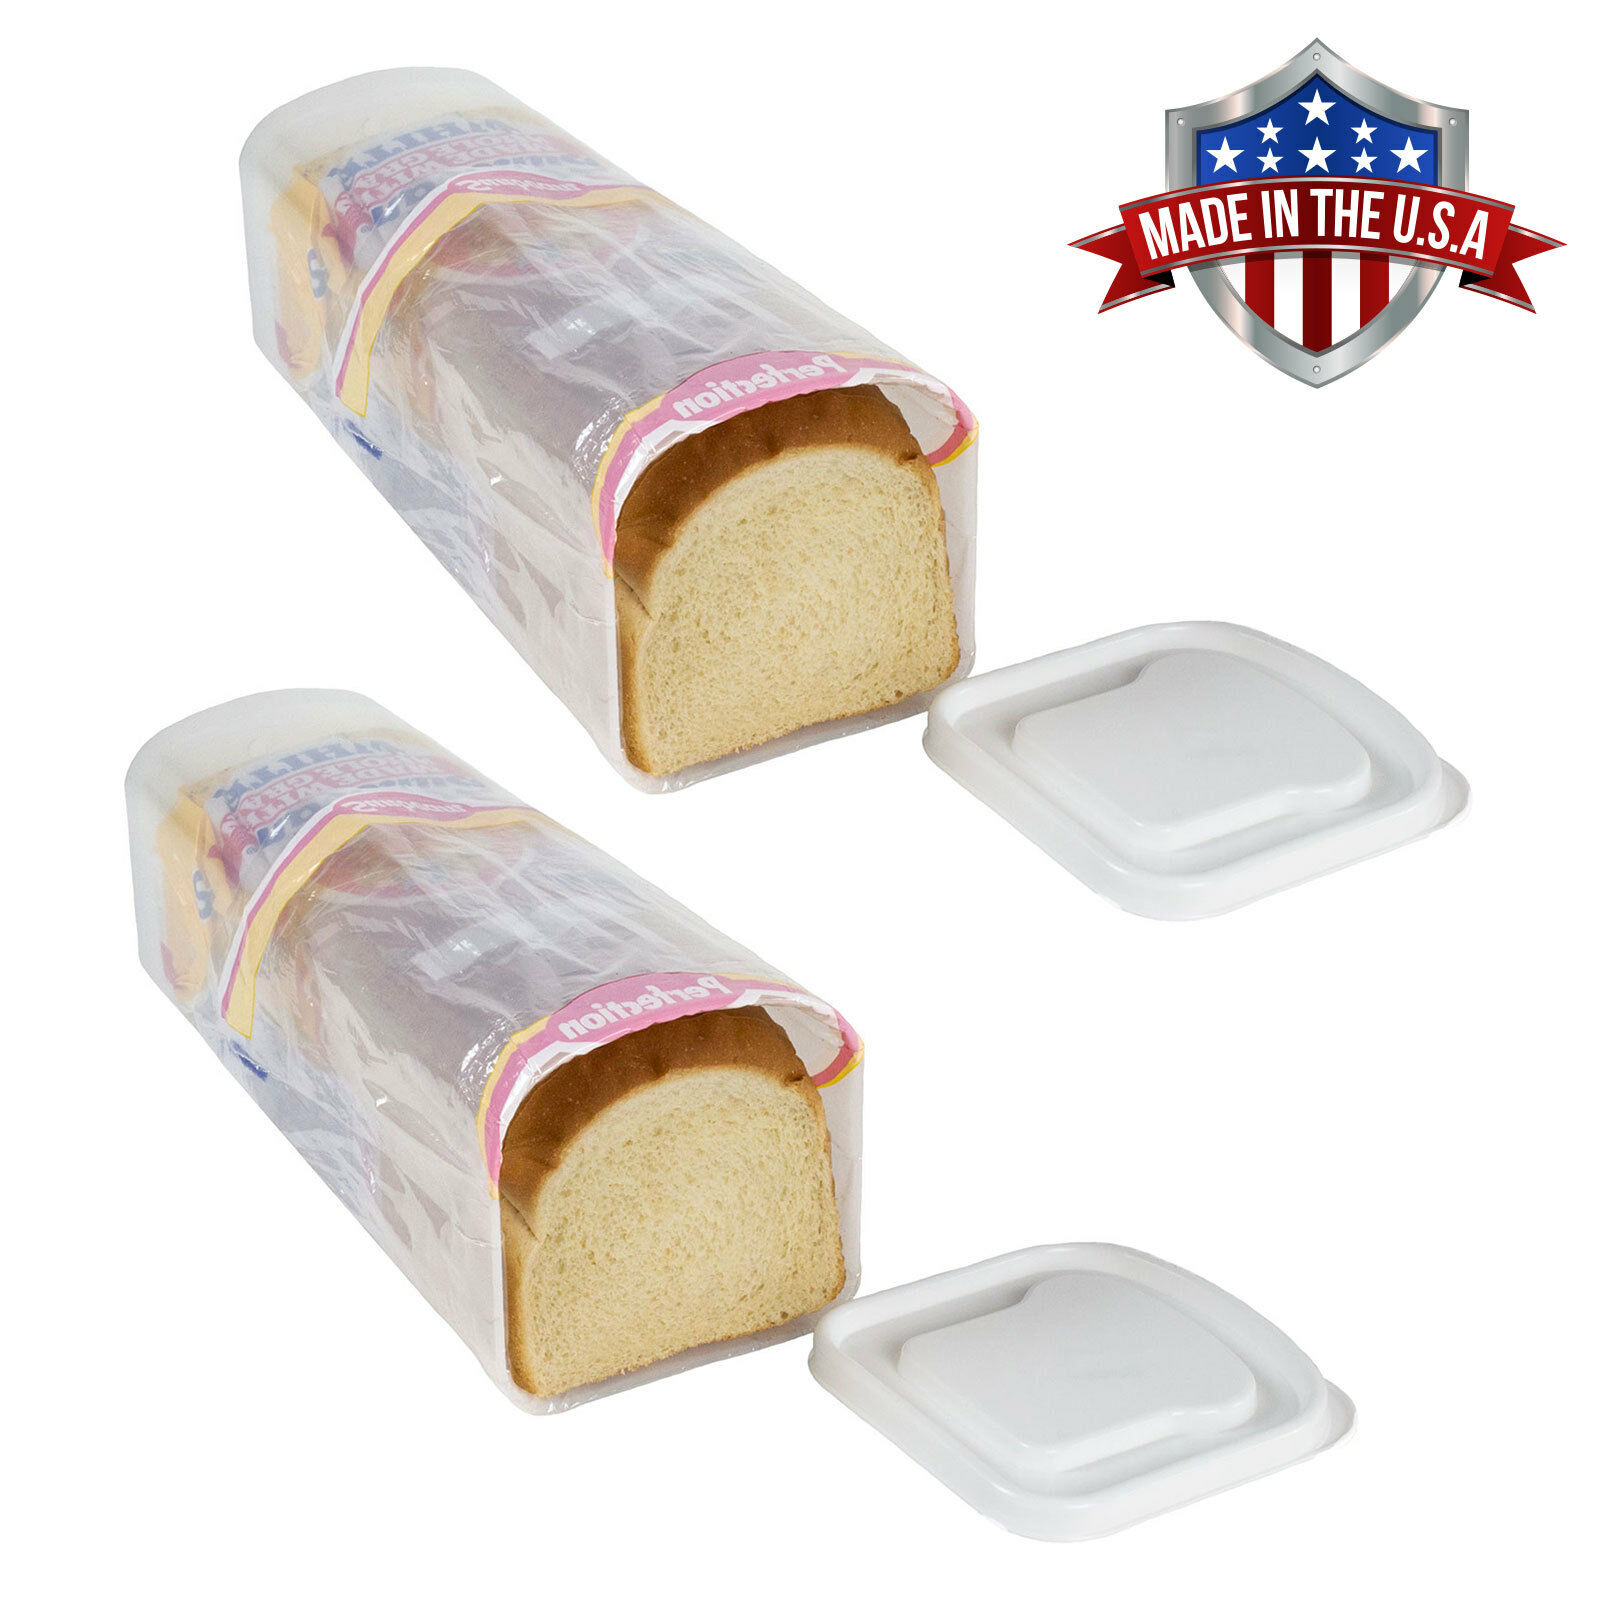 2 Pack Bread Keeper Holder Travel Sandwich Bread Box Crush-Proof Containers Food Storage Containers